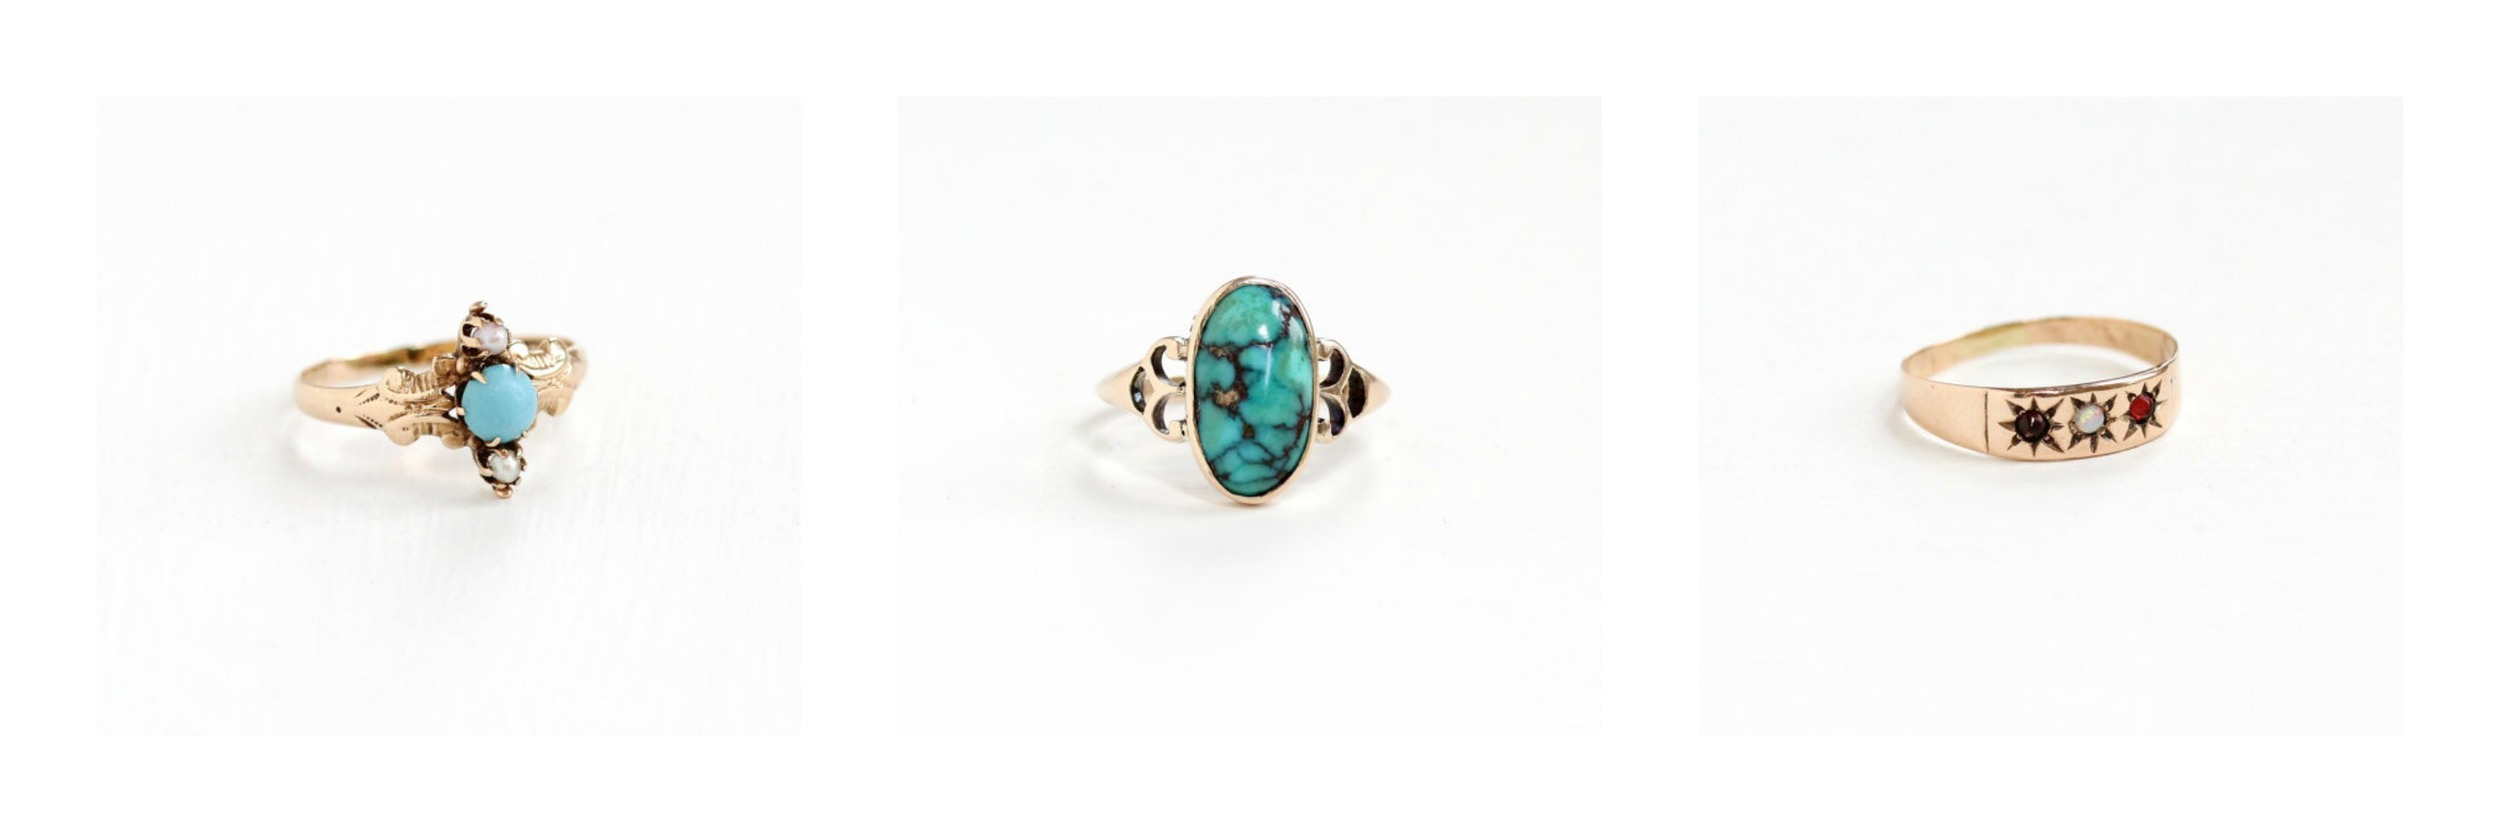 Antique Turquoise & Seed  Pearl Ring , Antique  Turquoise Ring , Antique Genuine  Opal Ring